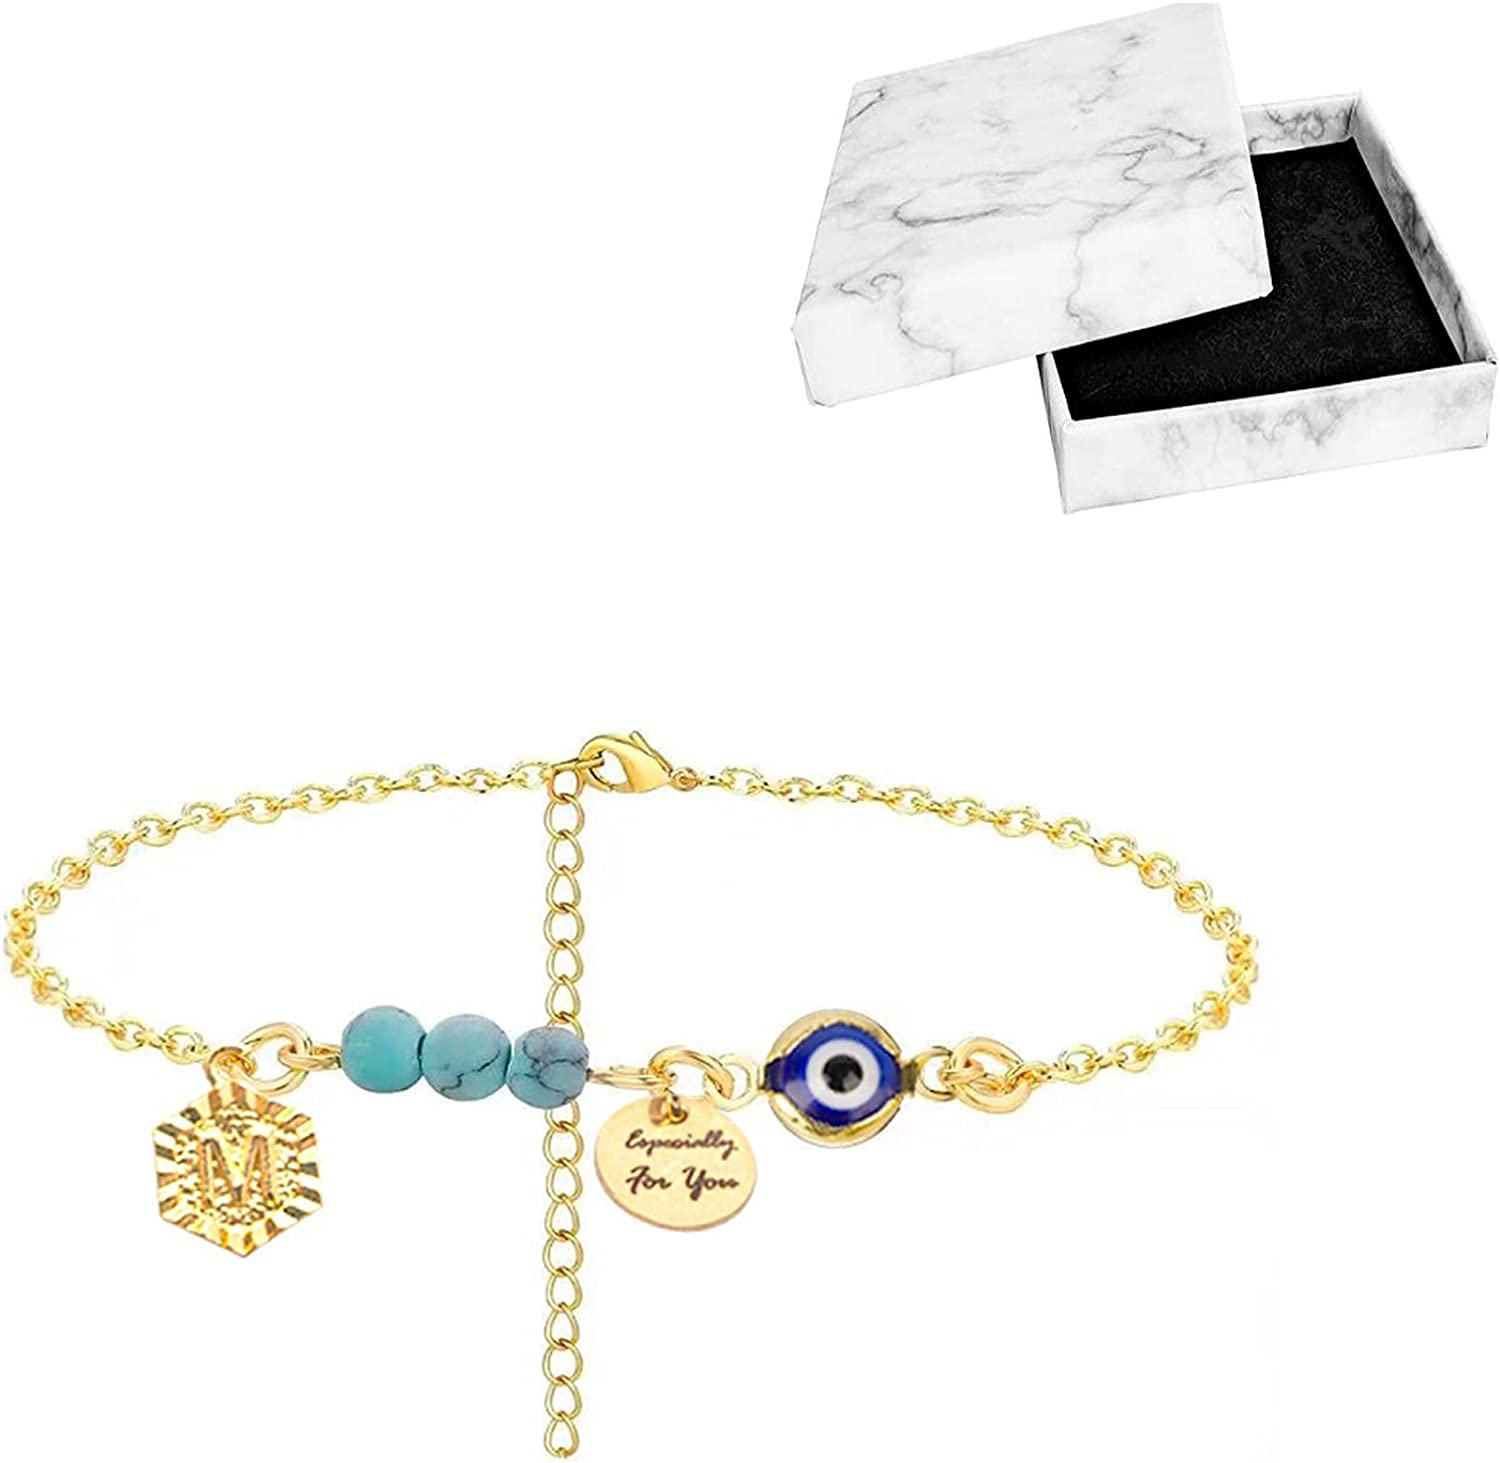 CSZhou-Boho Anklets for Women, 14K Gold Anklets with Evil Eye, Initial A-Z Letter and